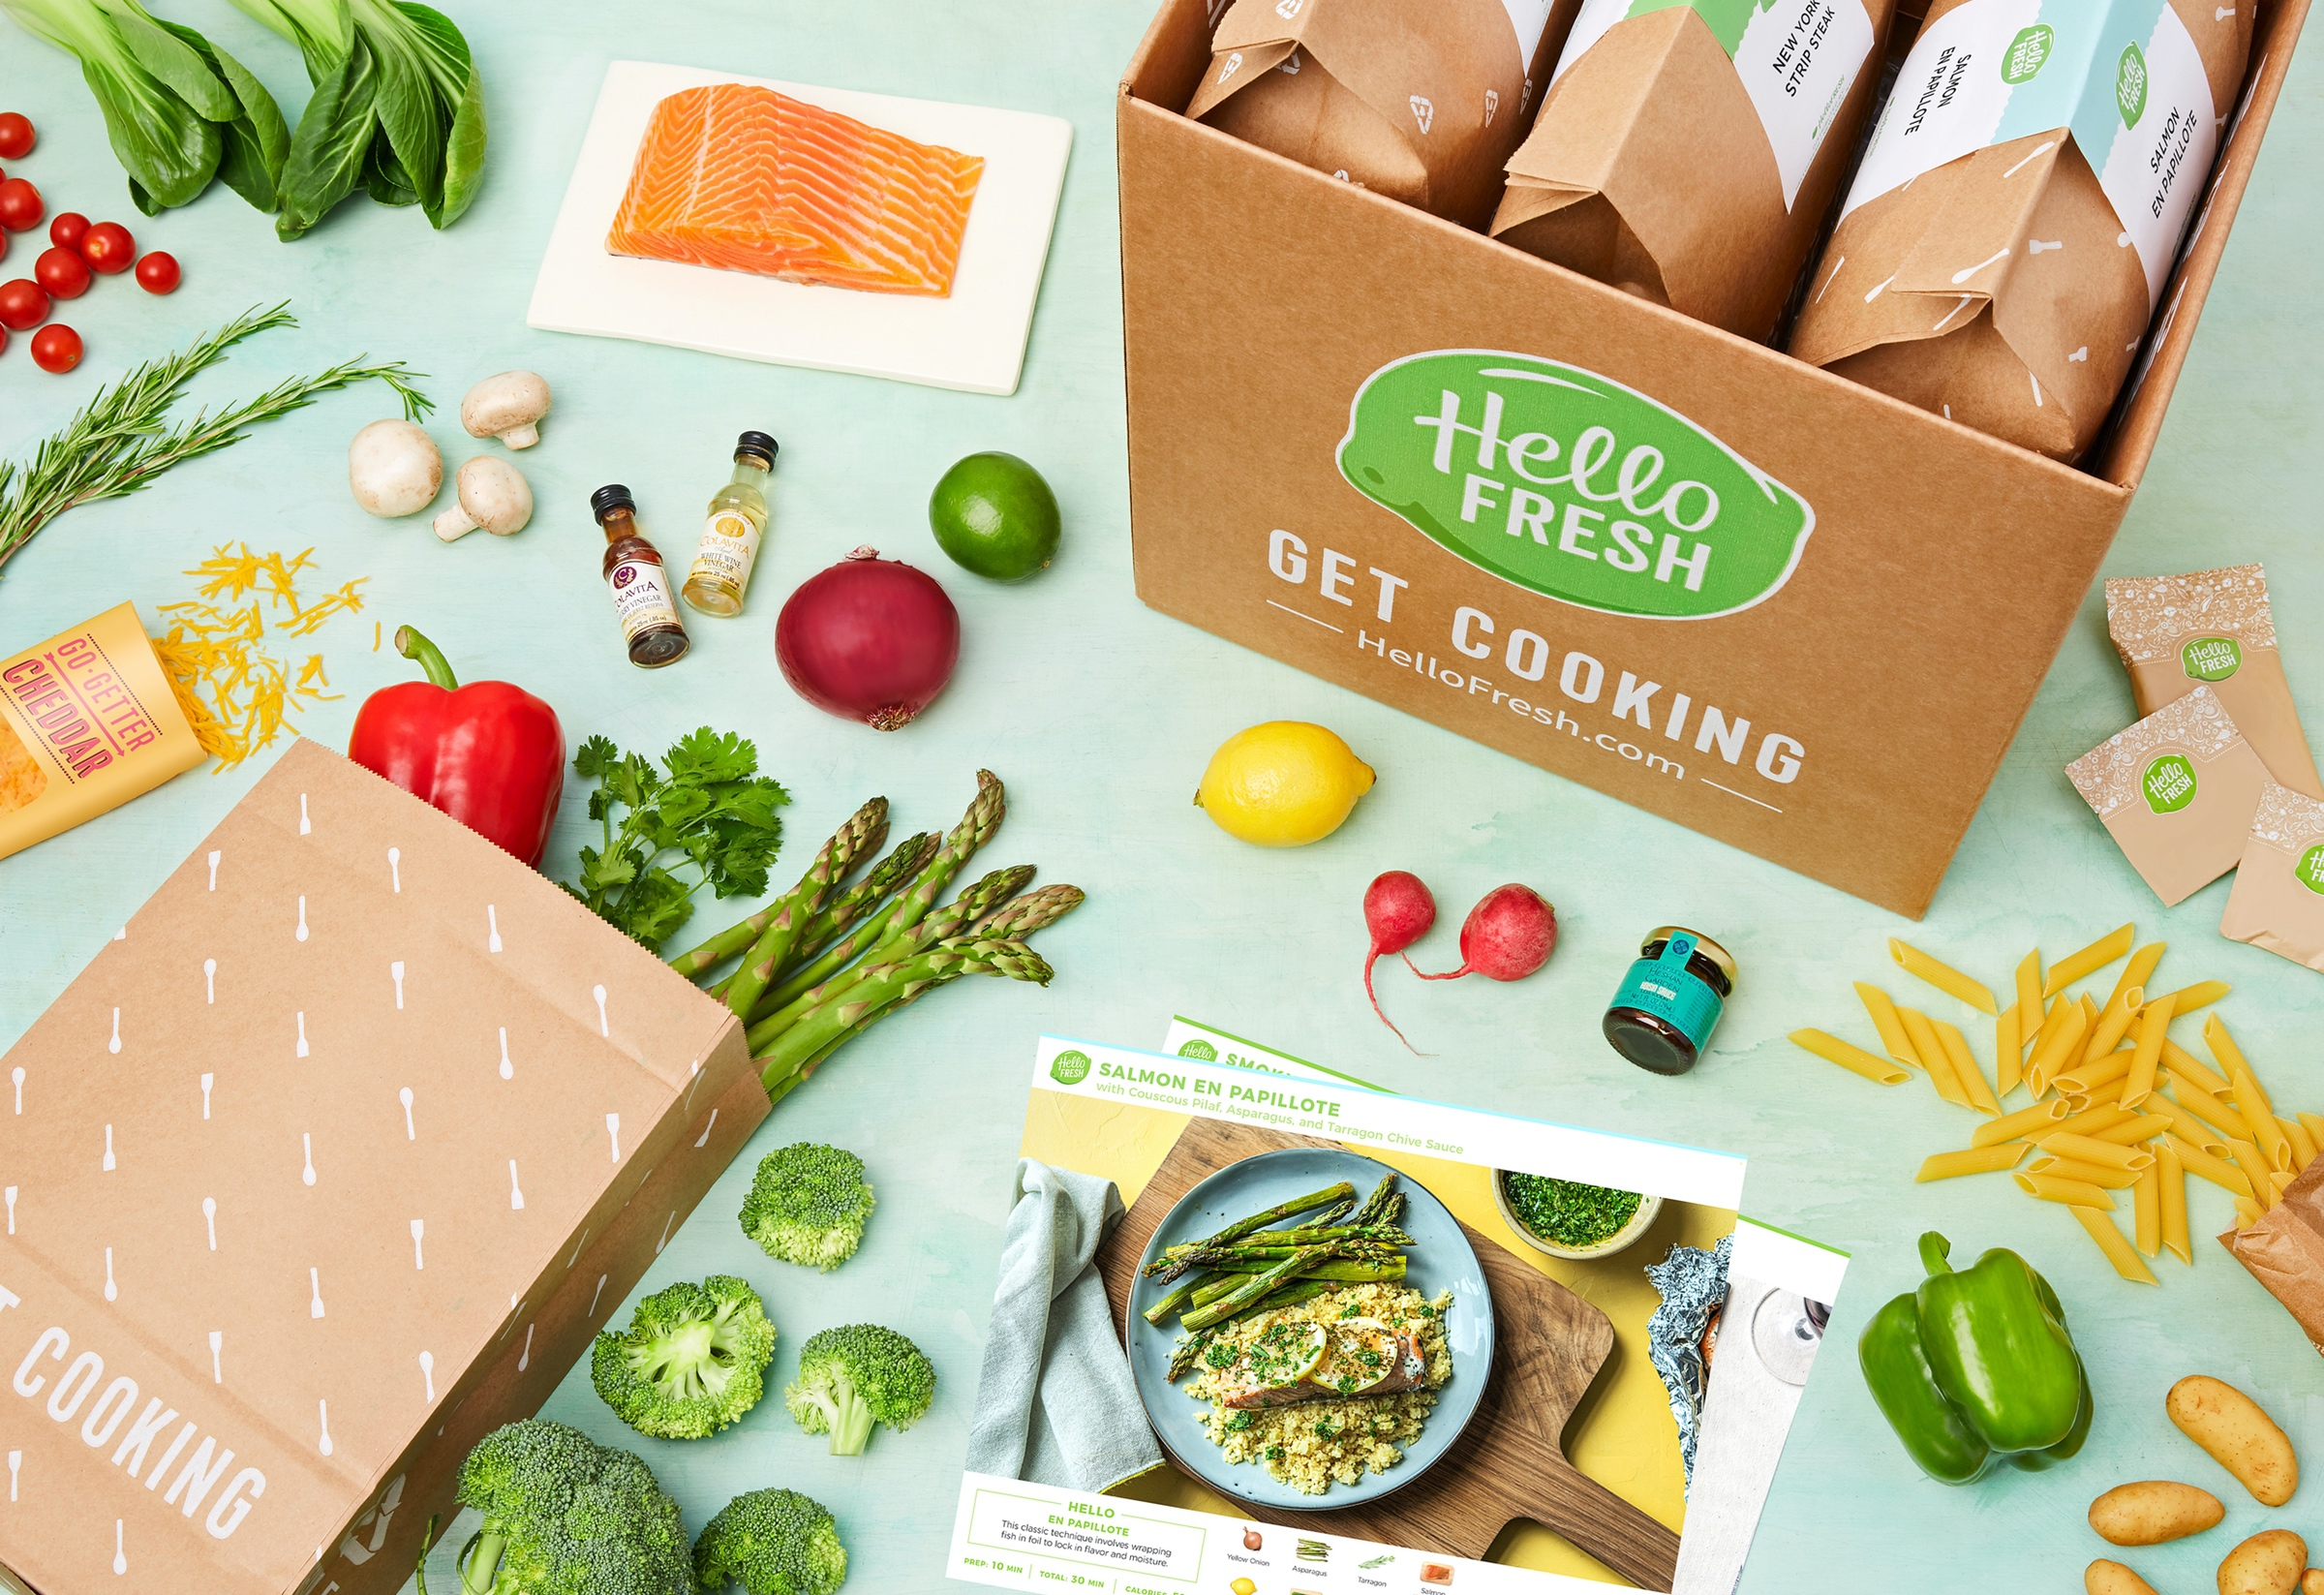 $80 OFF HELLO FRESH - For $80 off your first month of Hello Fresh, go to hellofresh.com/mascara80 and enter the promo code MASCARA80 at checkout.